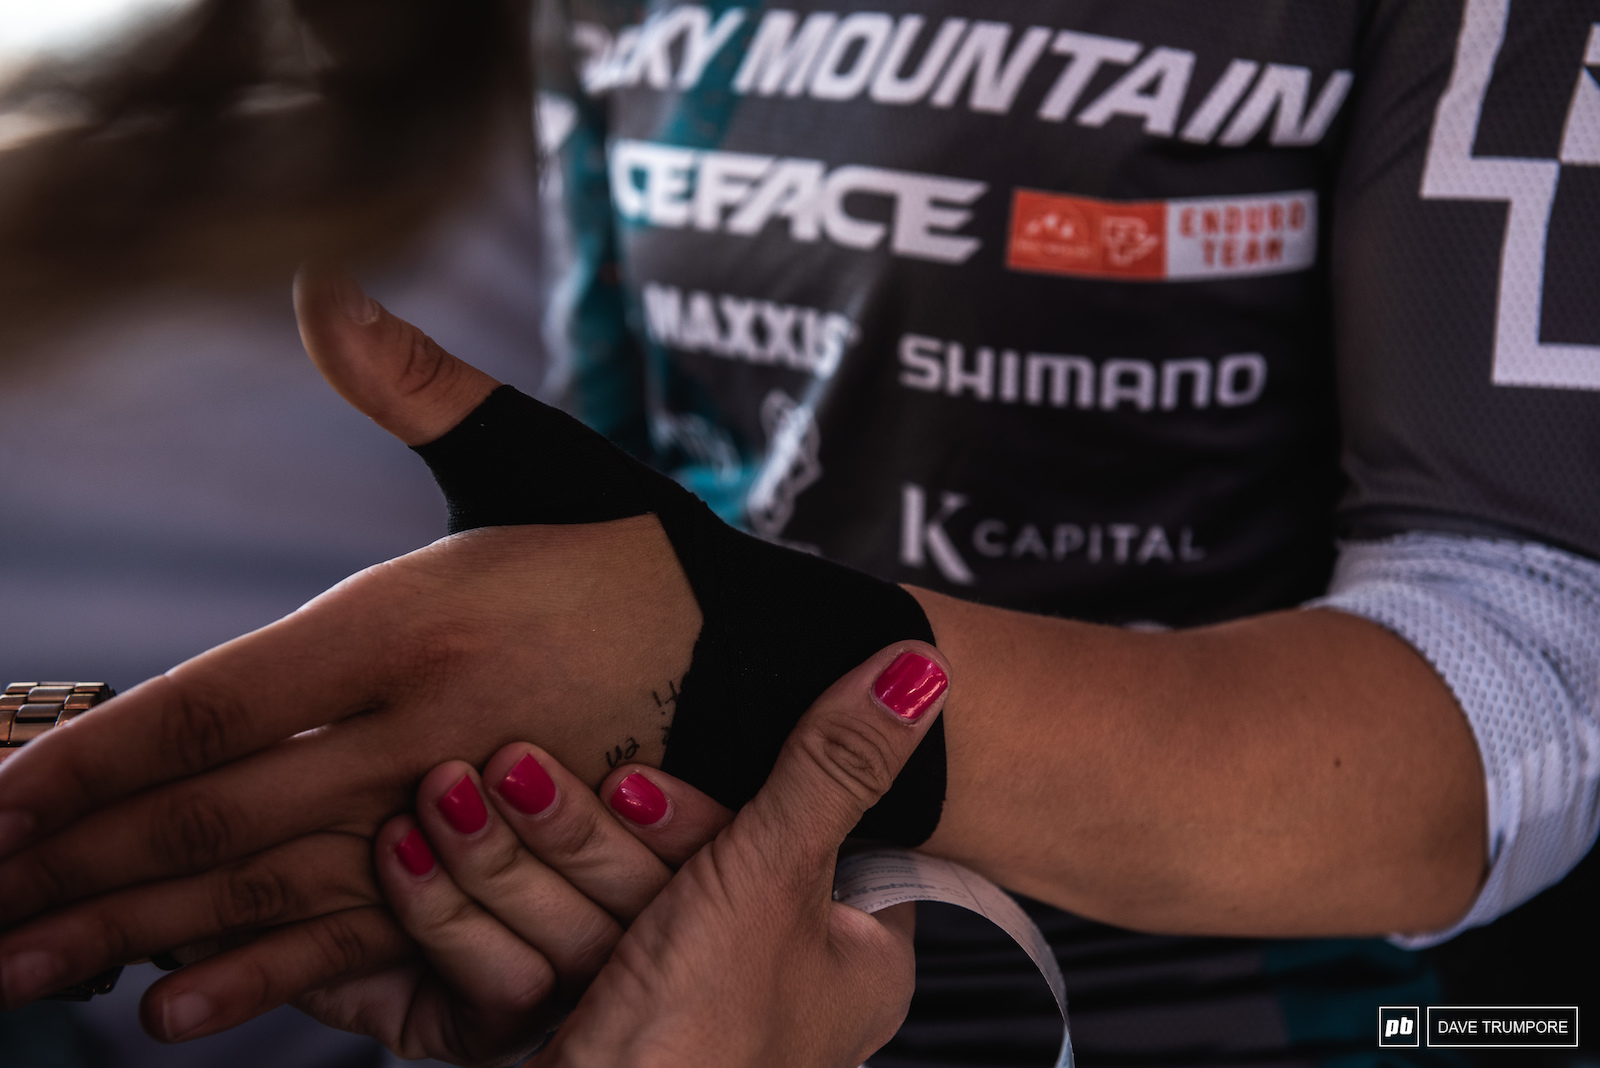 ALN joked that her wrist has been held together by tape for what seems like years now. If so that tape is strong enough to smash out a 2nd place finish.